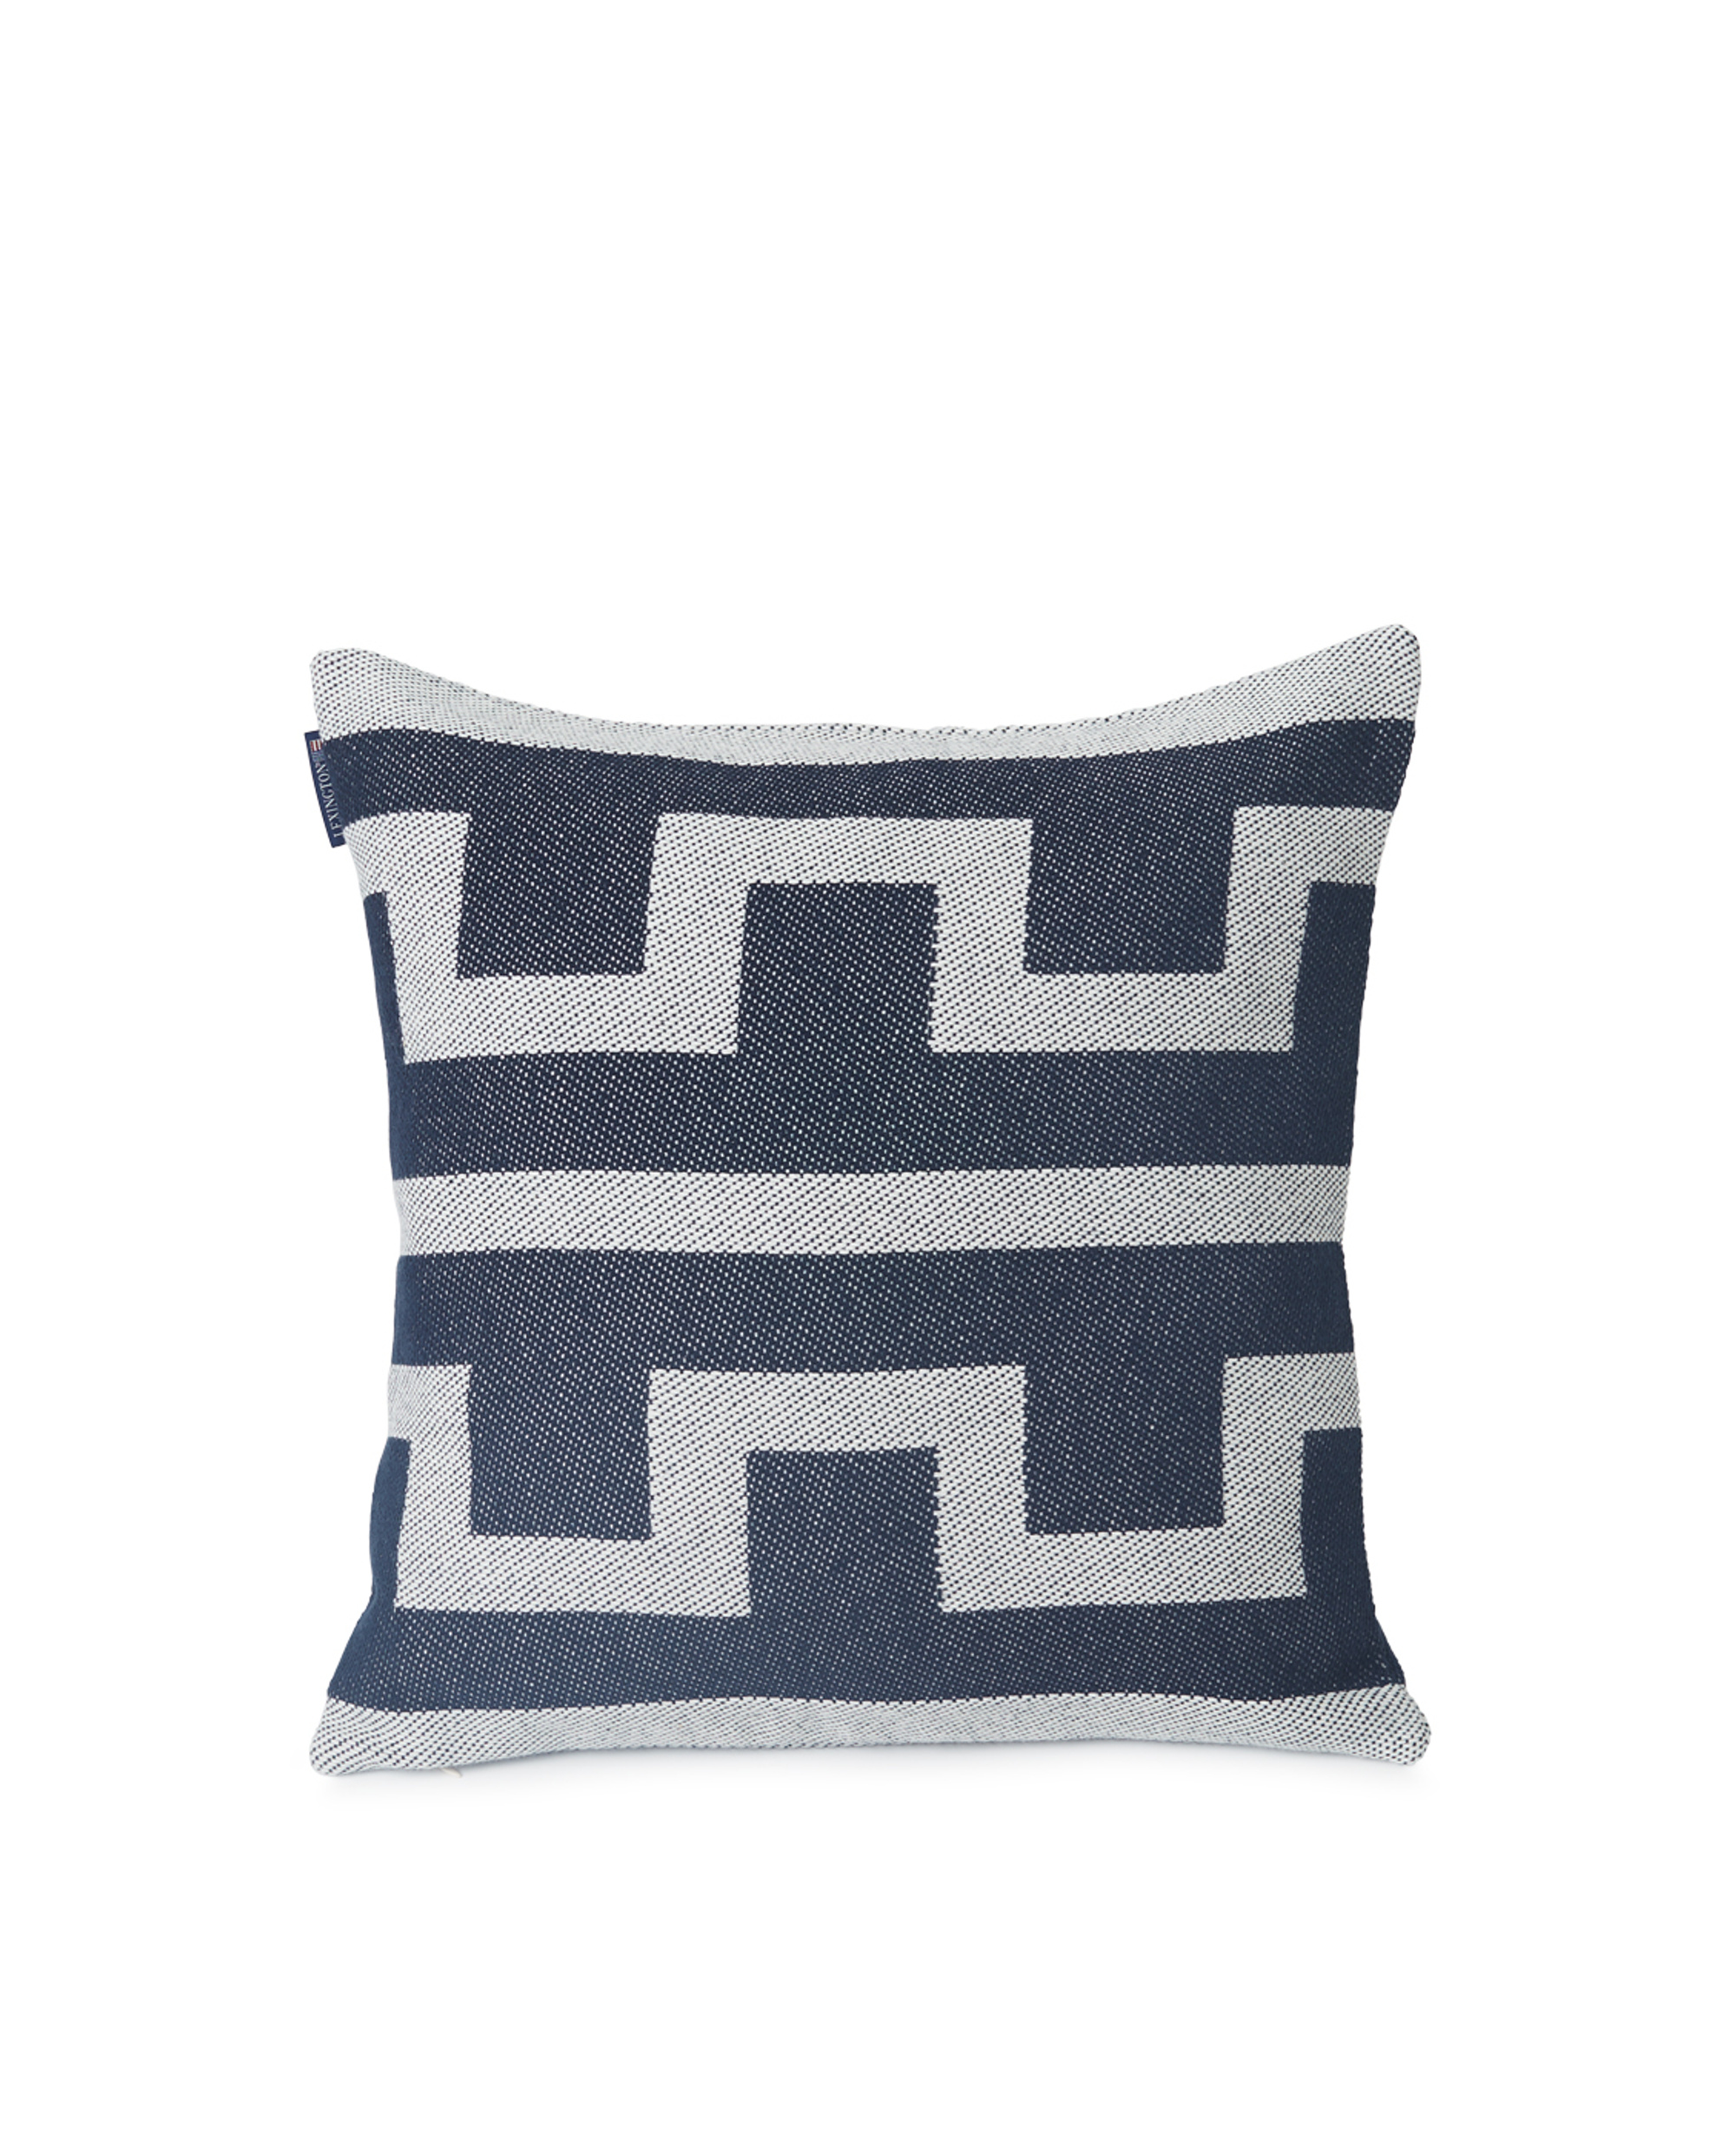 Graphic Recycled Cotton Pillow Cover, Off White/Dark Blue